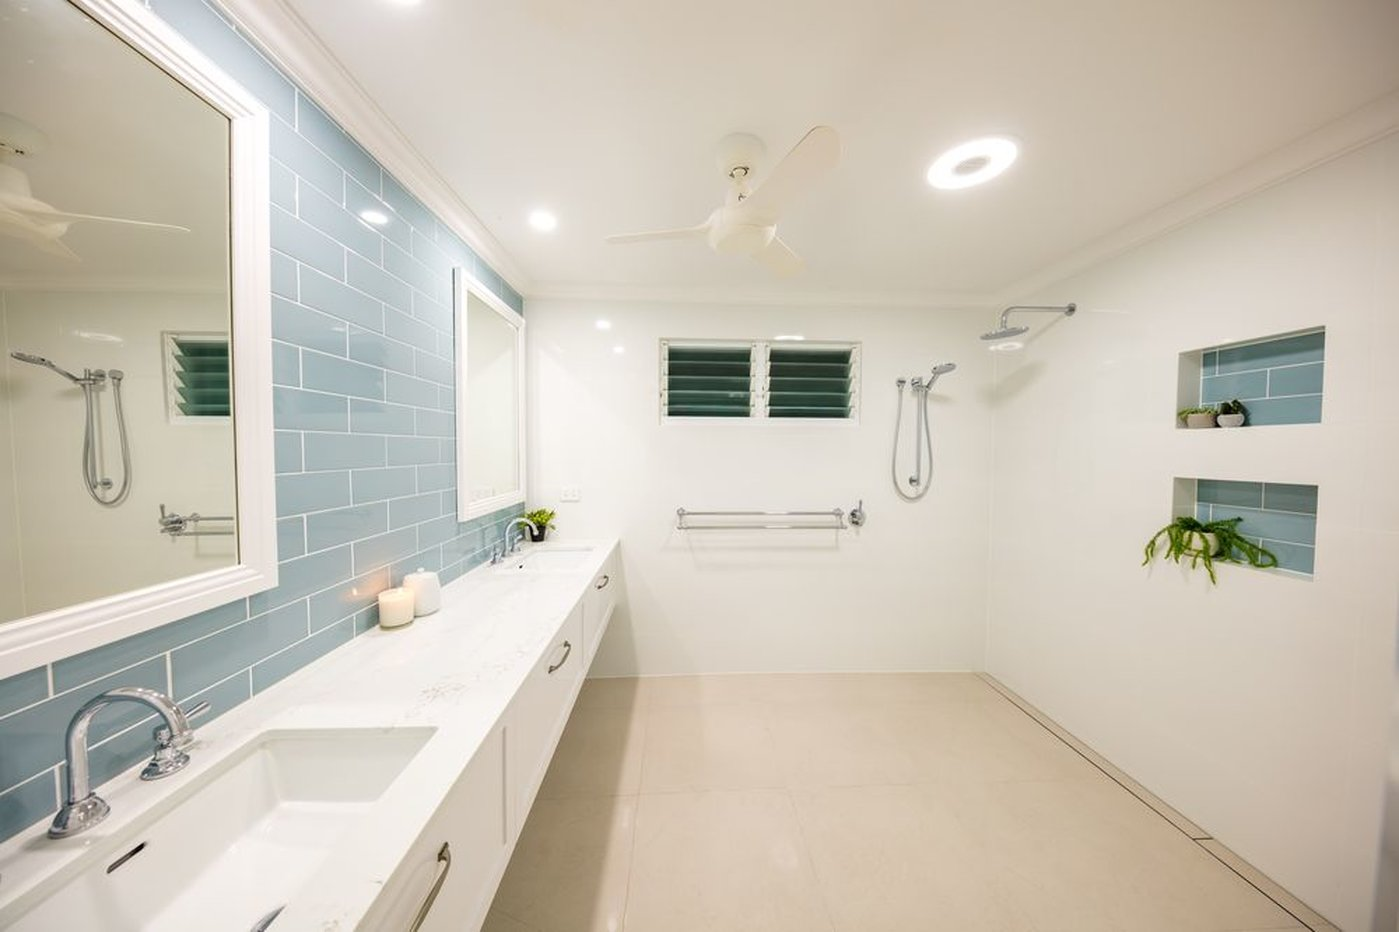 Complete renovation to bathroom white with green subway tiles and niches